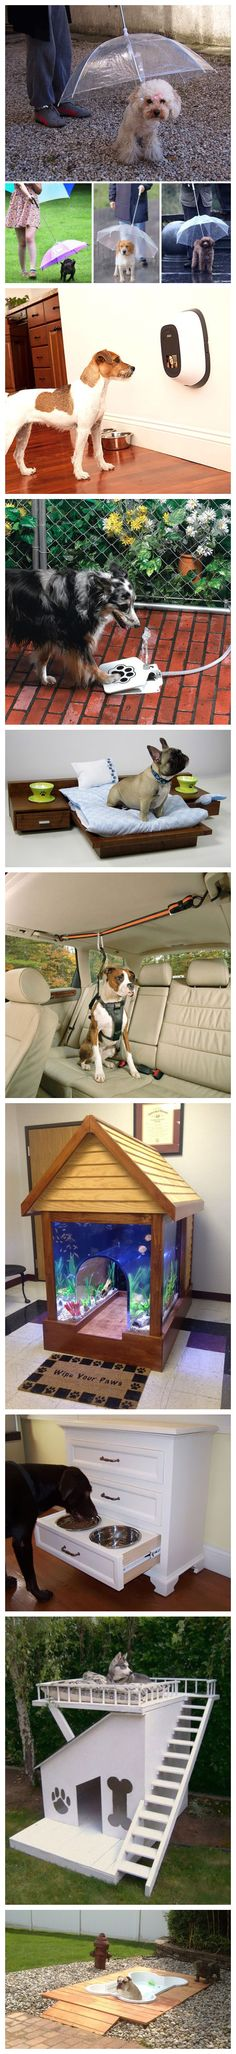 Love your pet: Creative products for doggies! Cooool! For more inspirations, visit us at http://www.facebook.com/zosomart